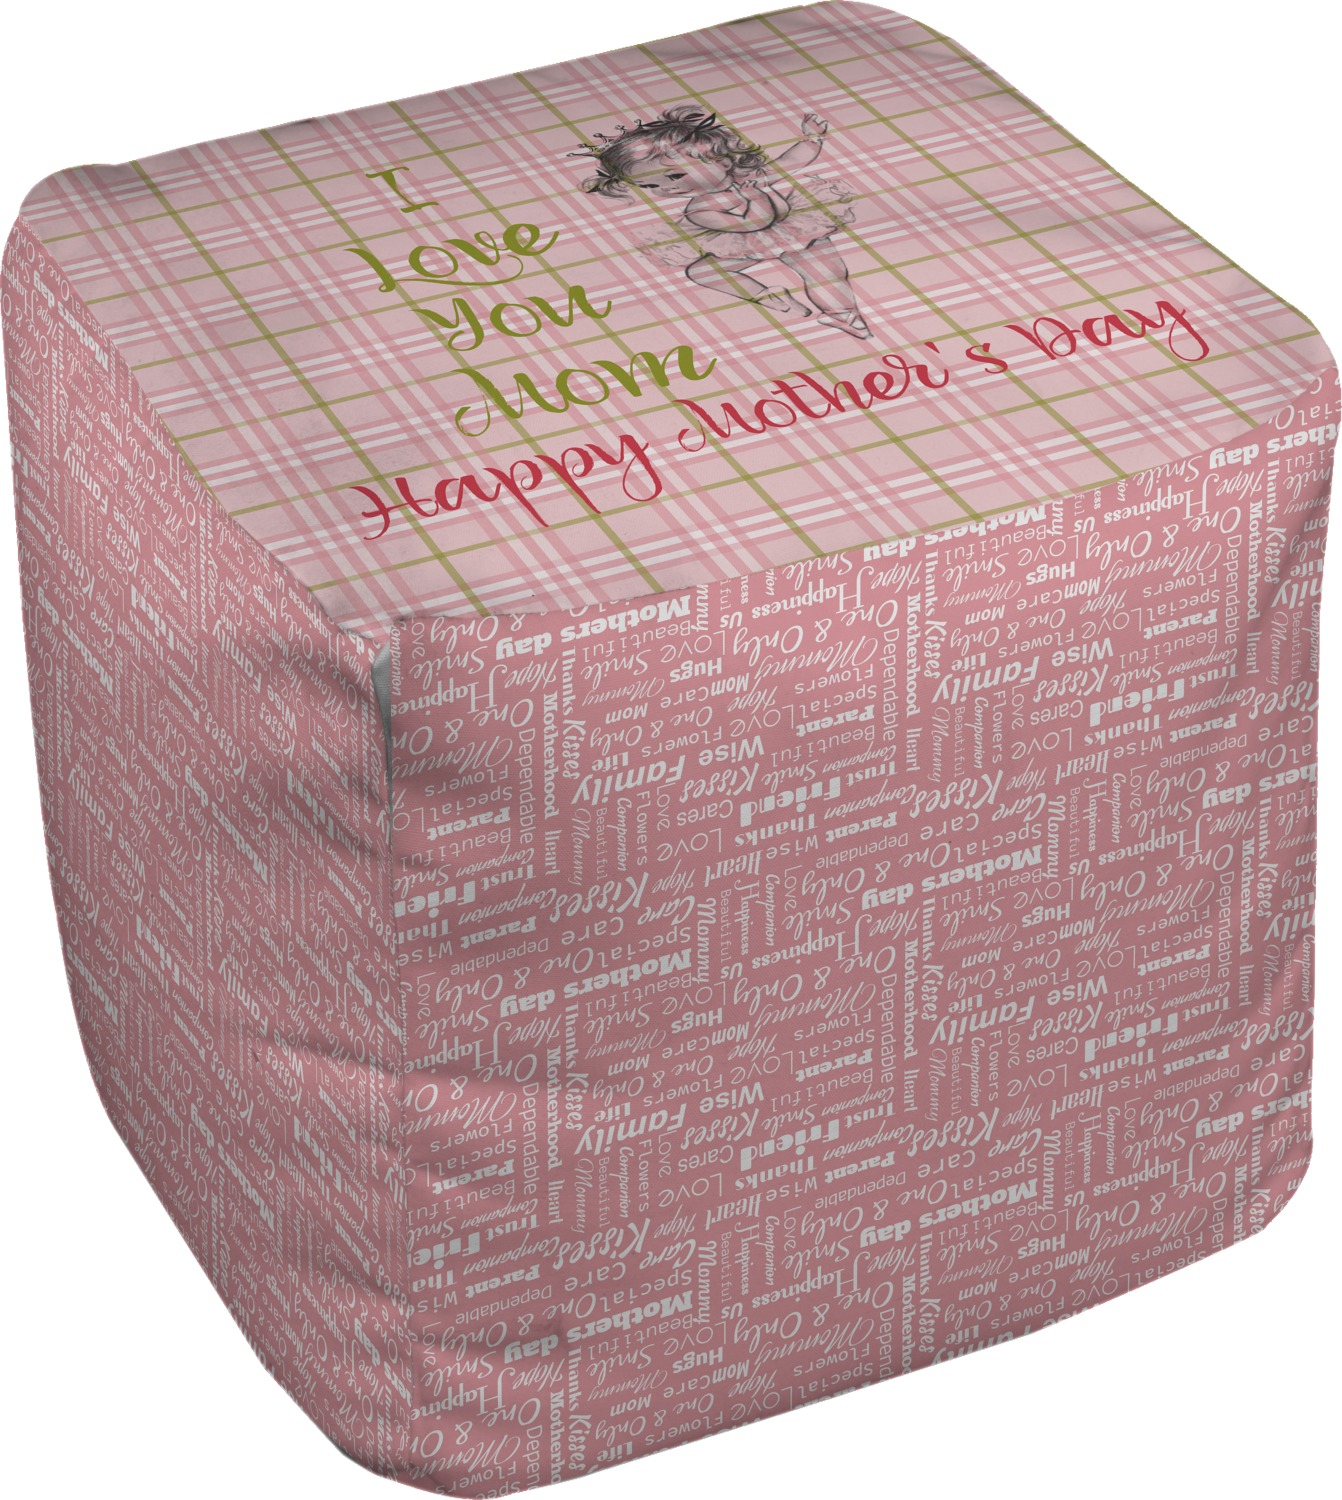 mother 39 s day cube pouf ottoman 18 youcustomizeit. Black Bedroom Furniture Sets. Home Design Ideas